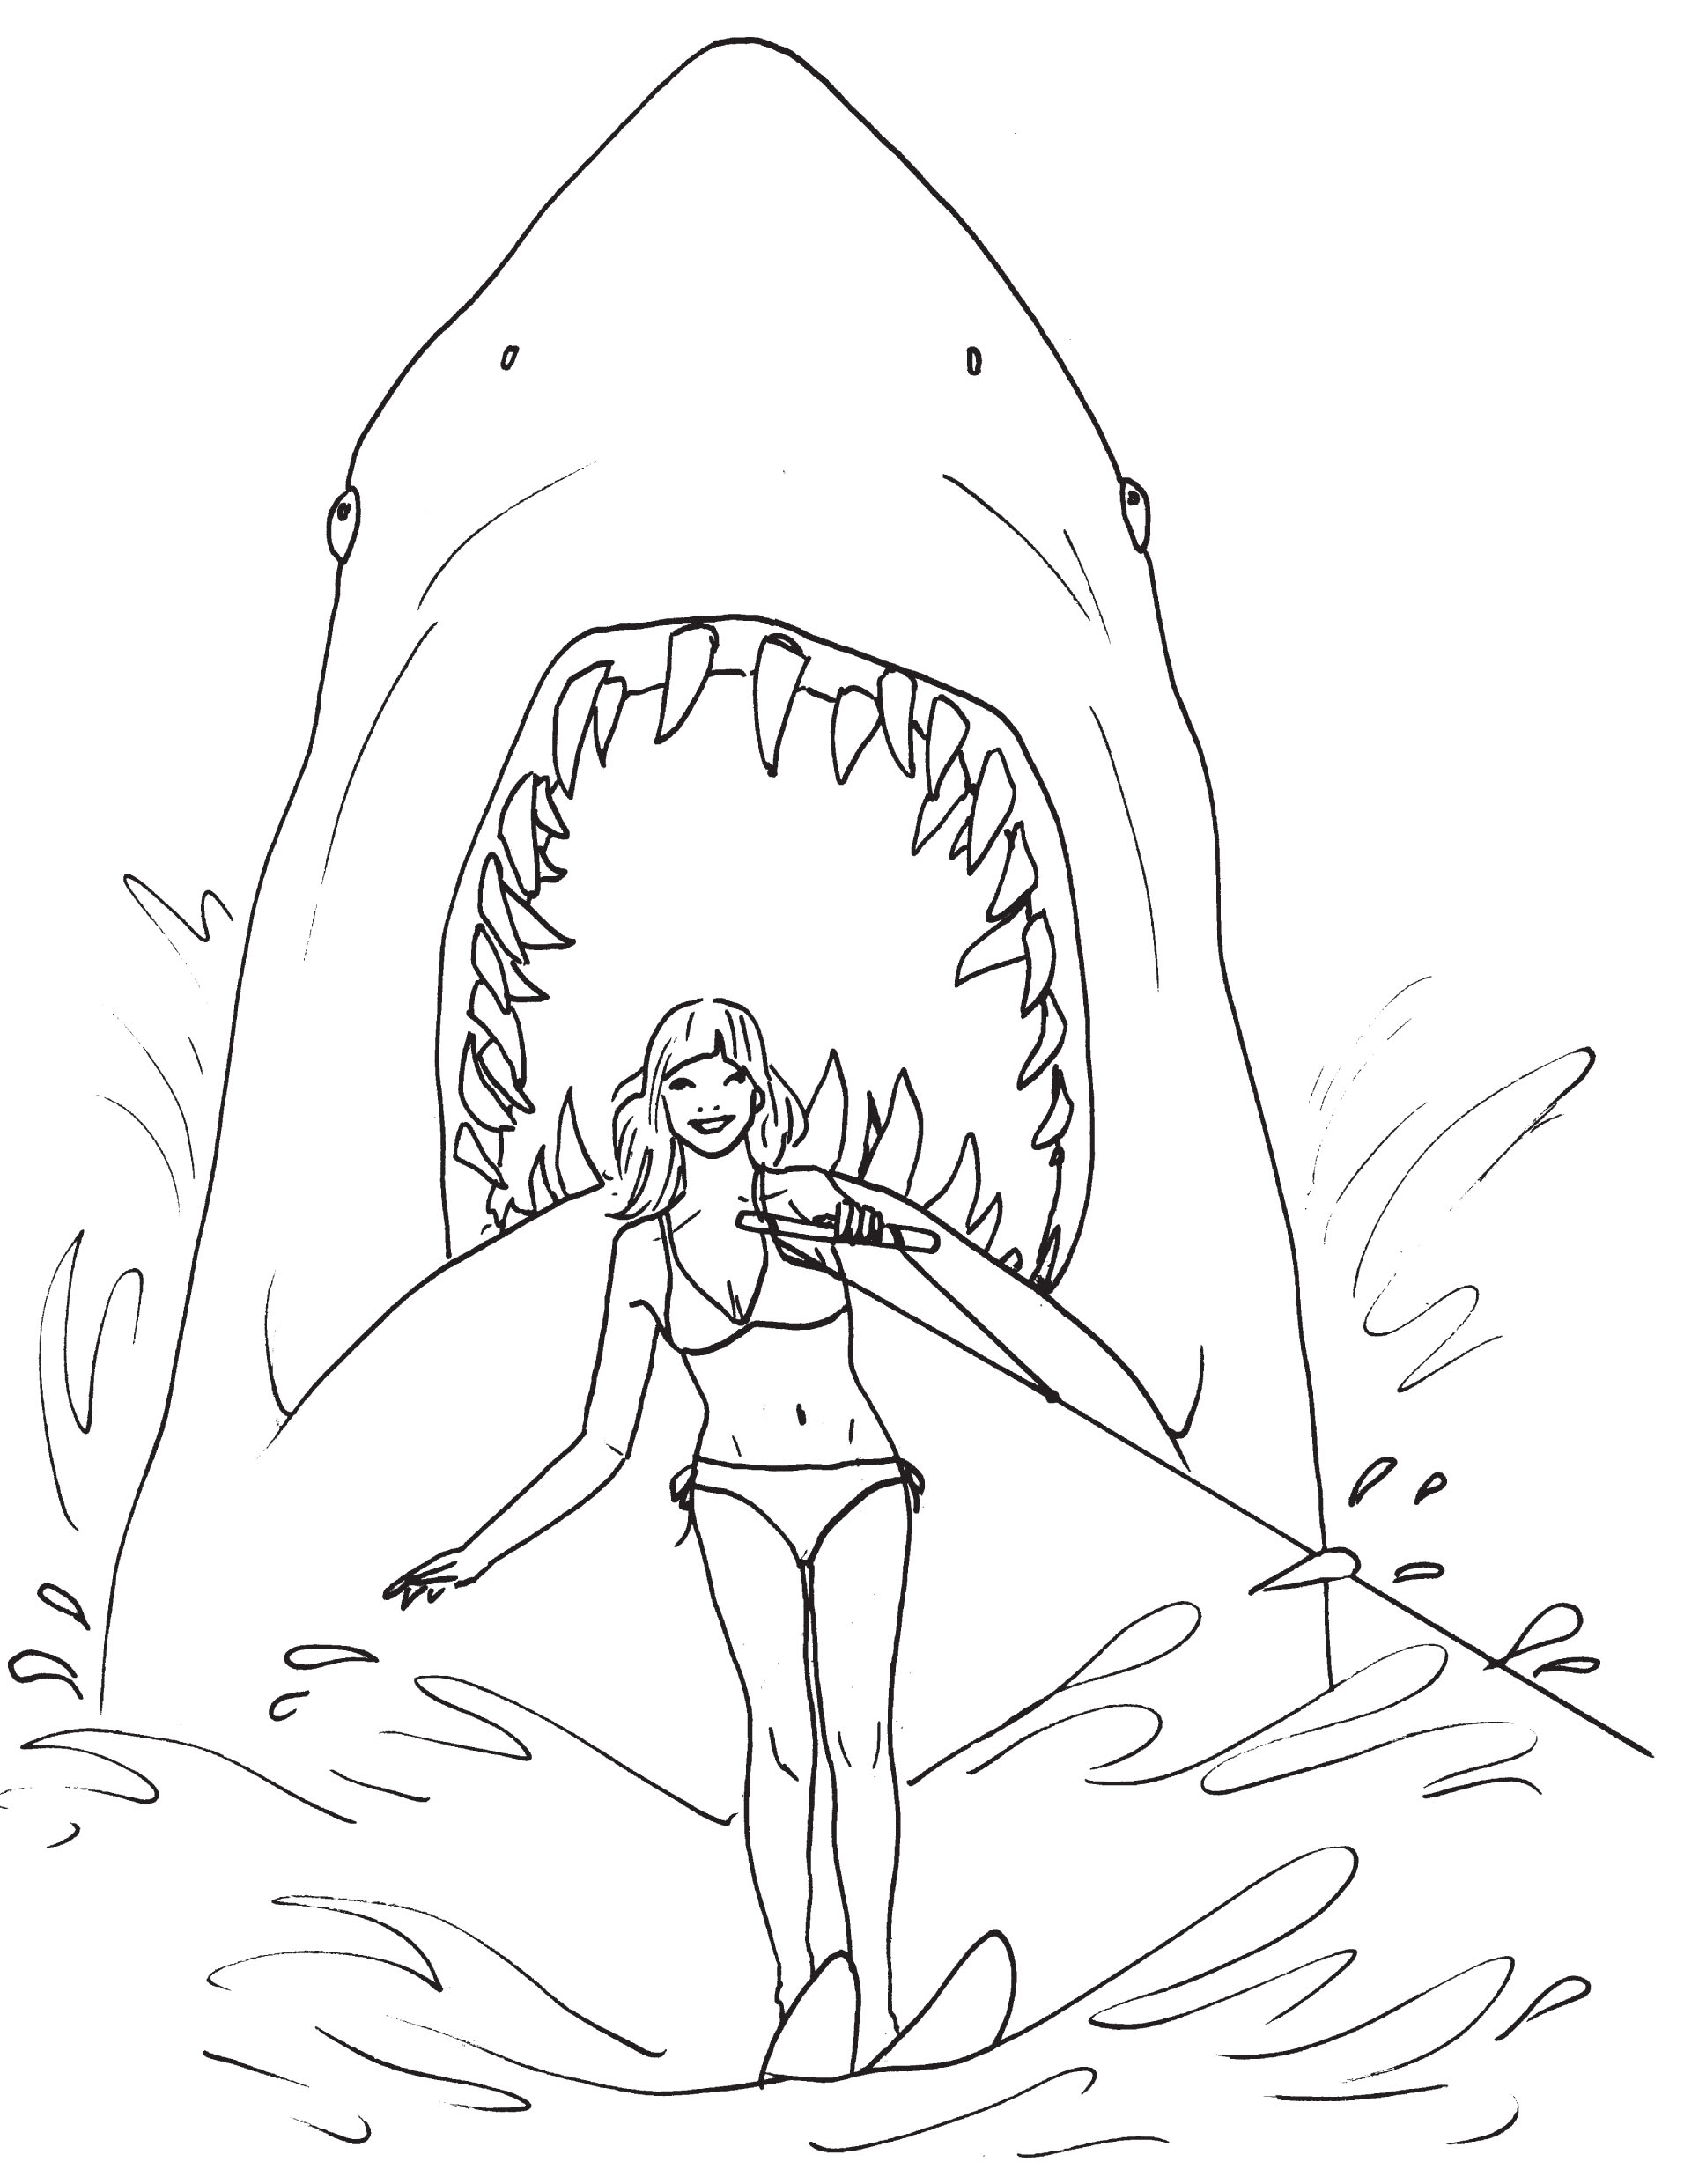 Great White Shark Coloring Pages To Download And Print For